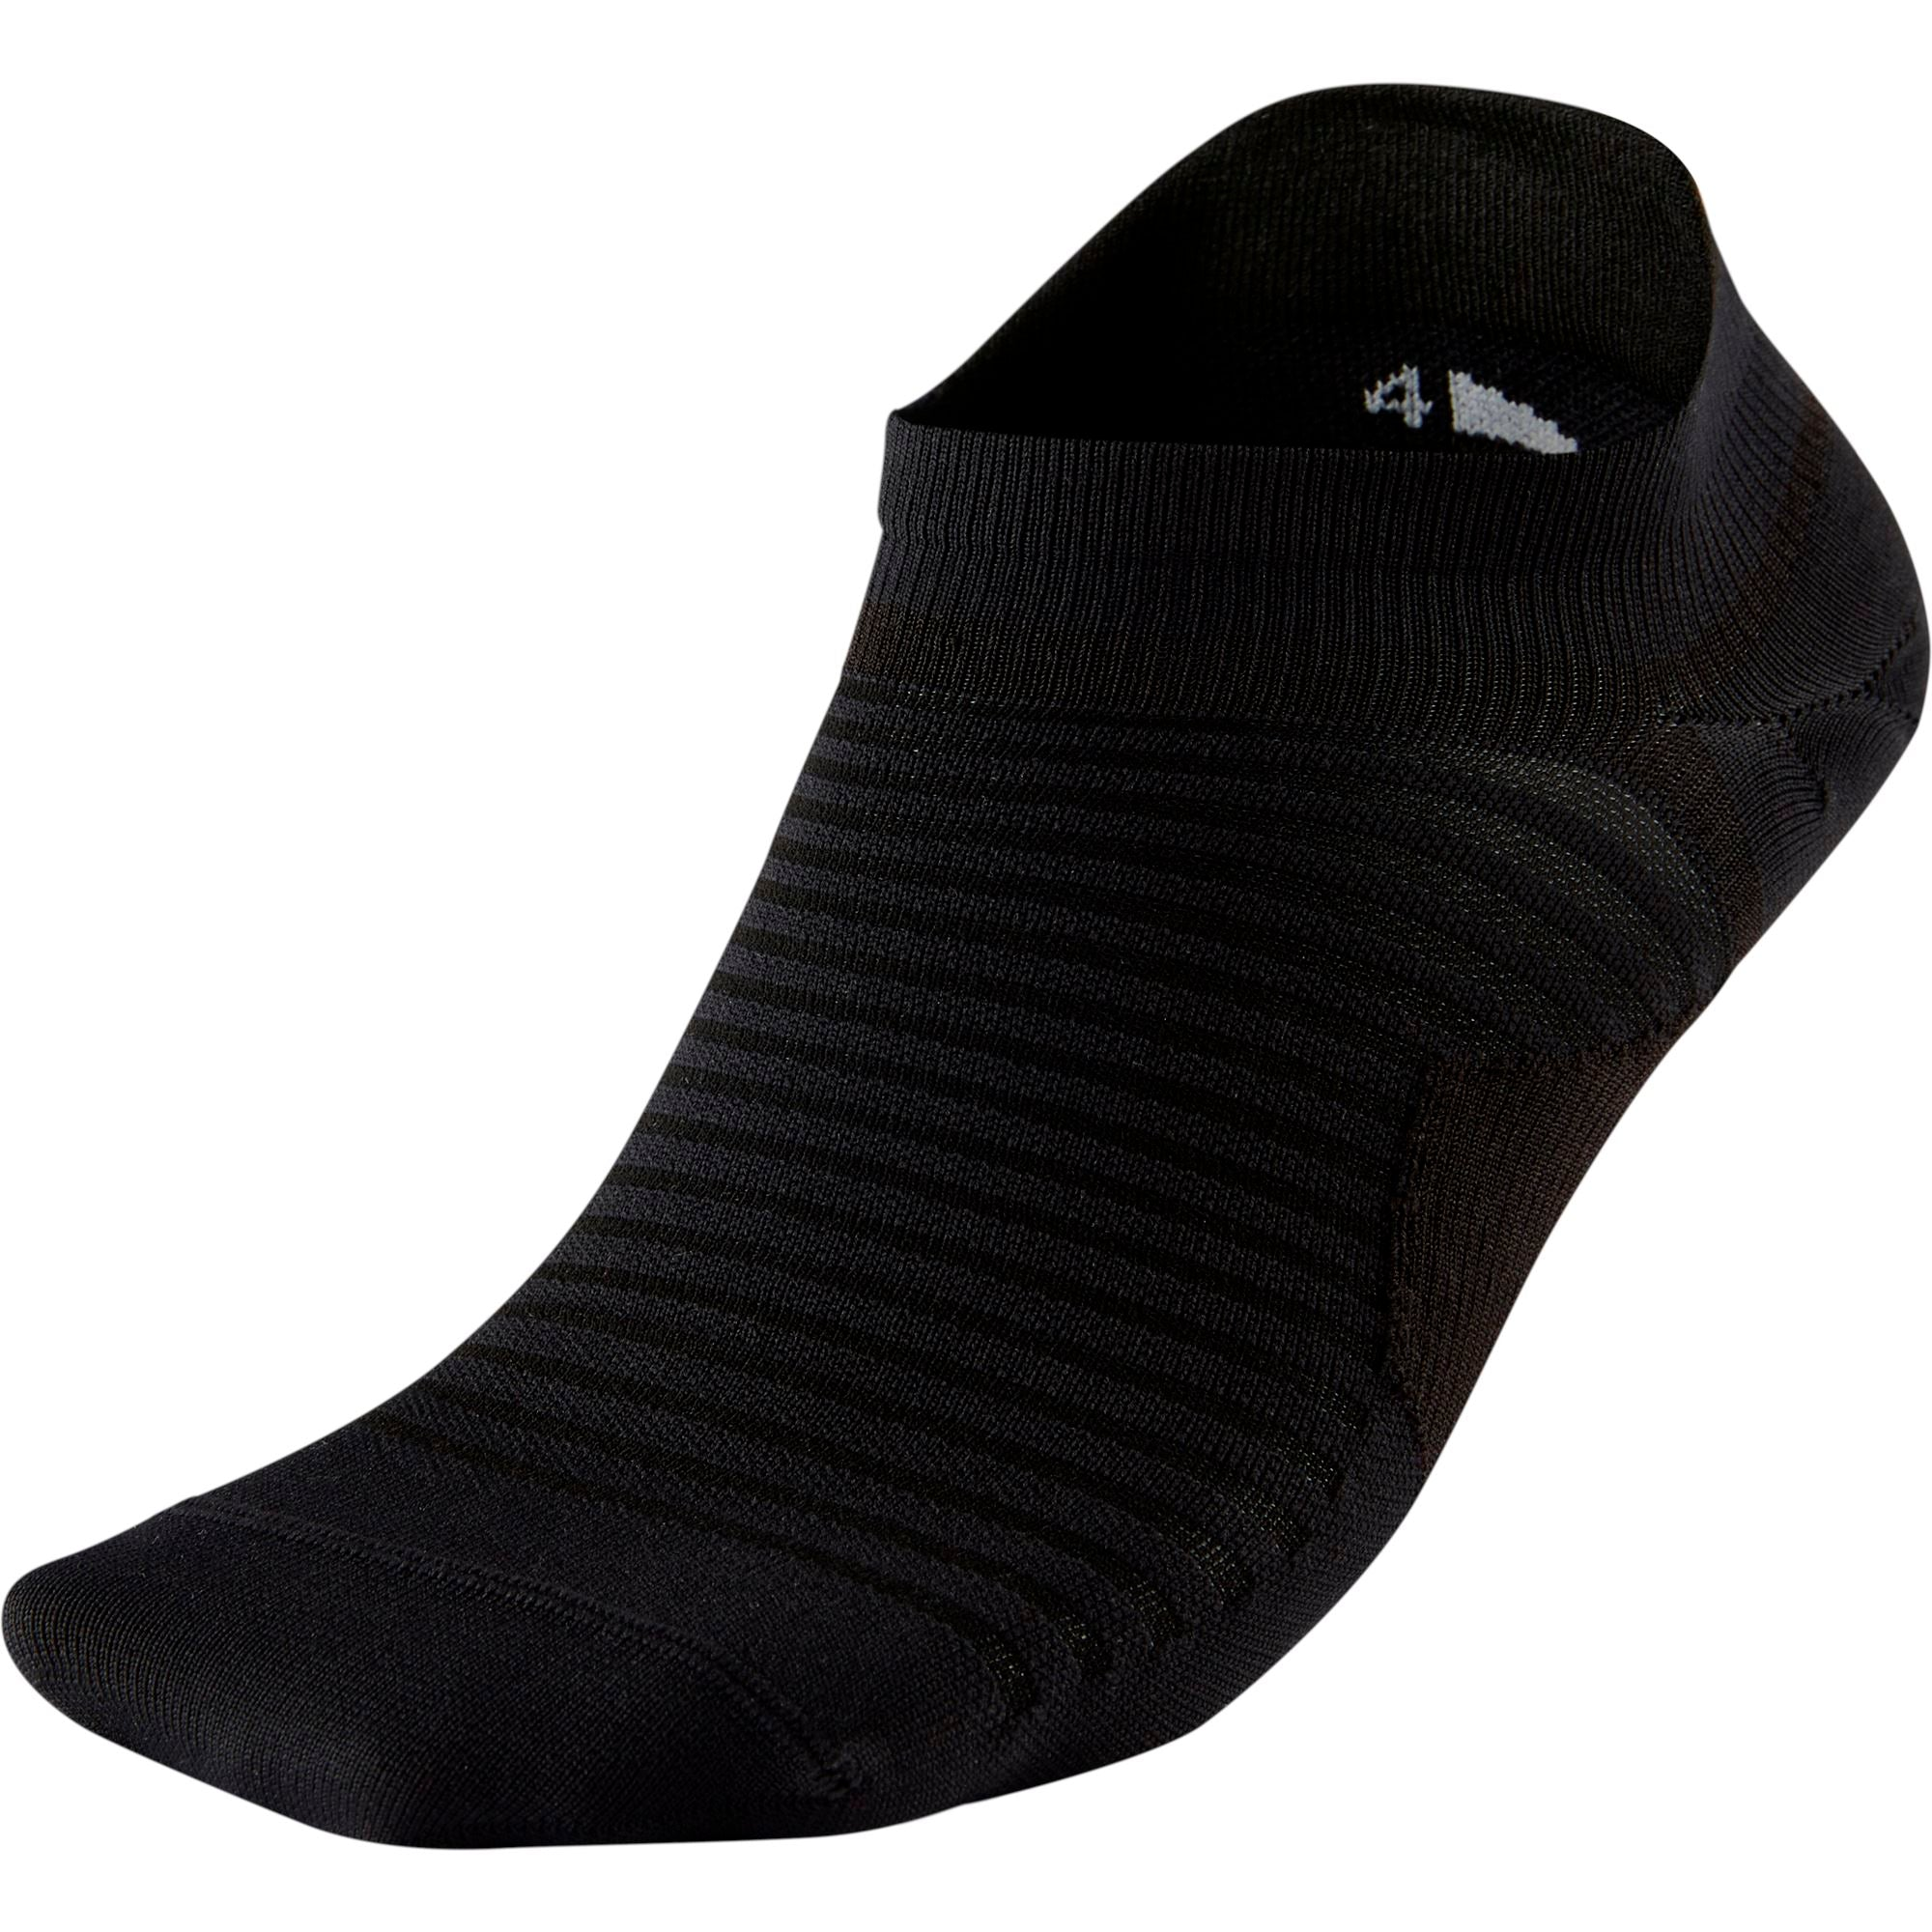 Nike Adults Spark Lightweight No-Show Running Socks - Black/Reflective SP-ApparelSocks-Unisex Nike